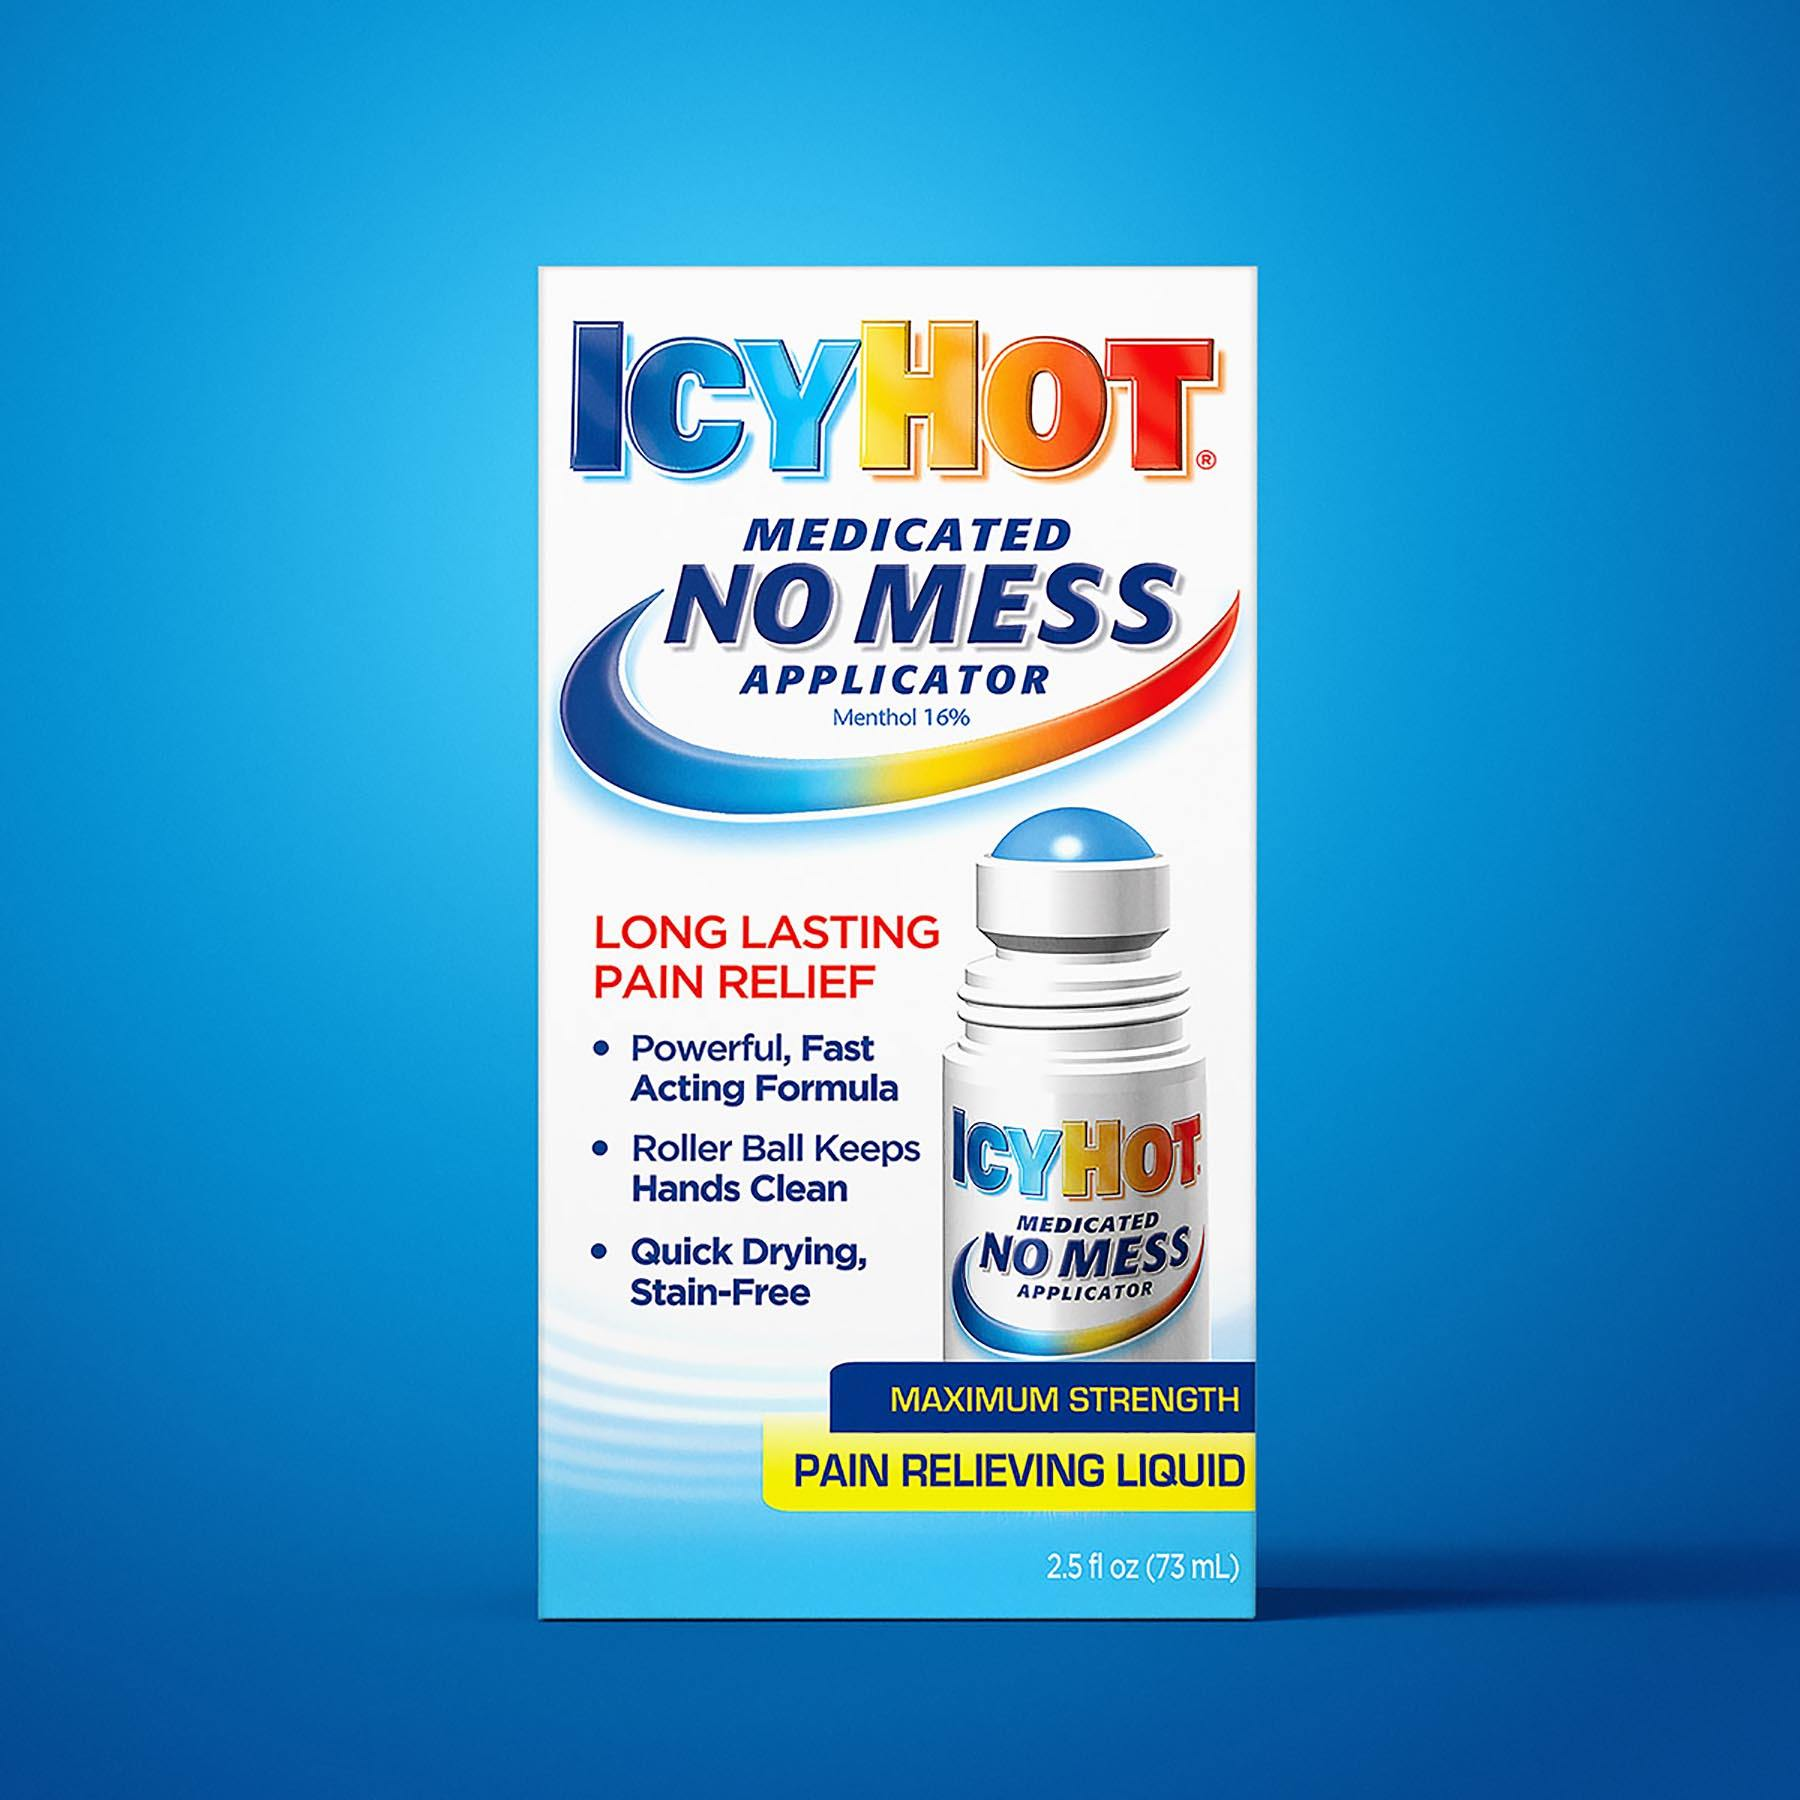 IcyHot No Mess Applicator Package Design